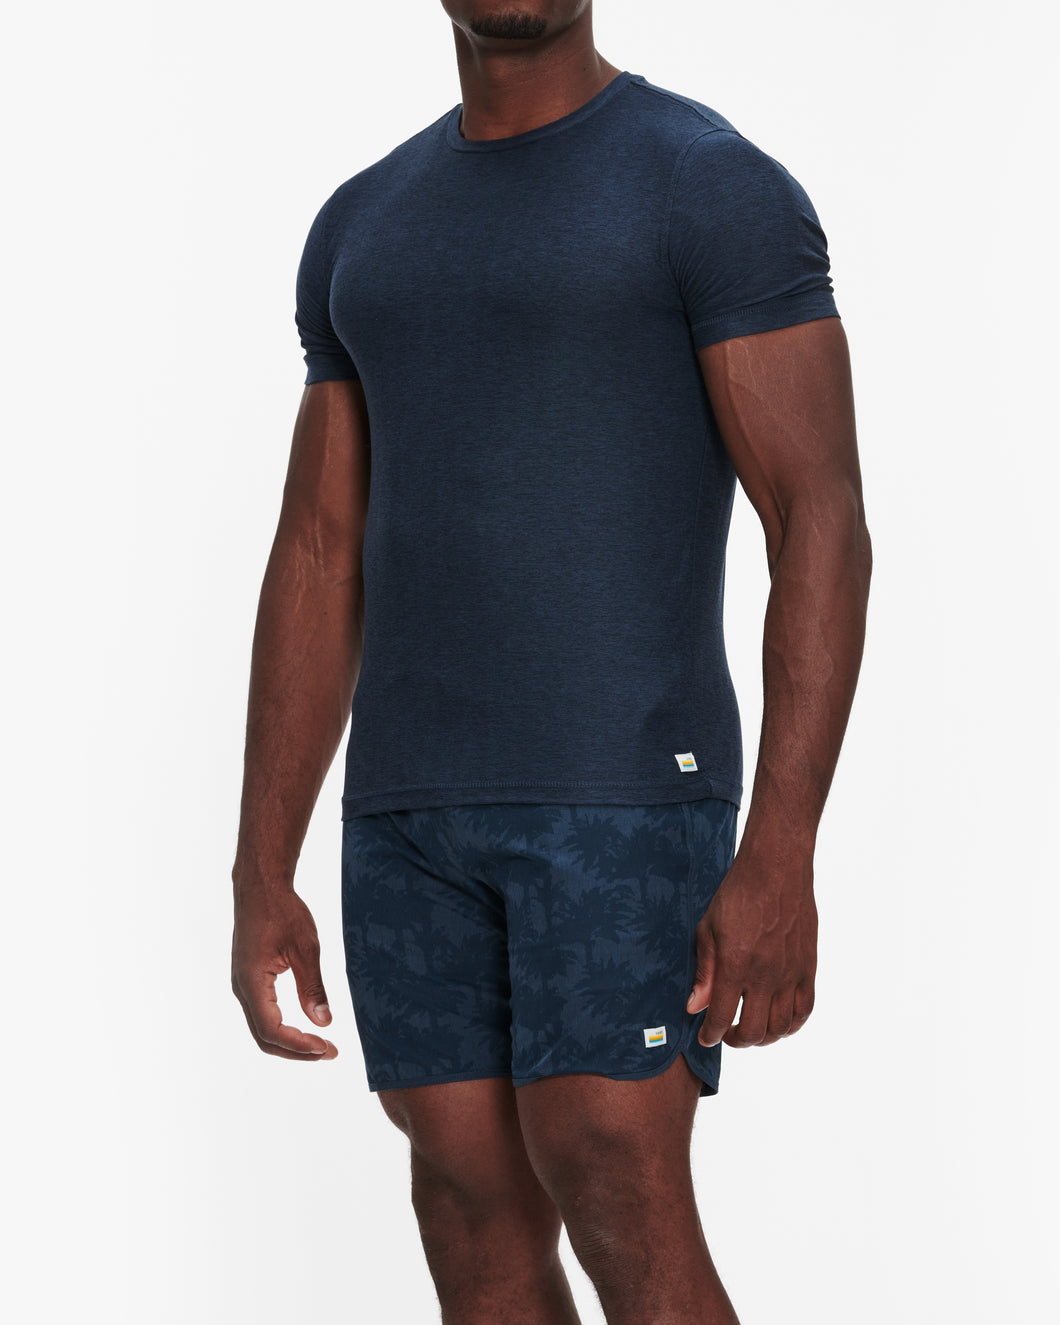 VUORI STRATO TECH TEE NAVY HEATHER